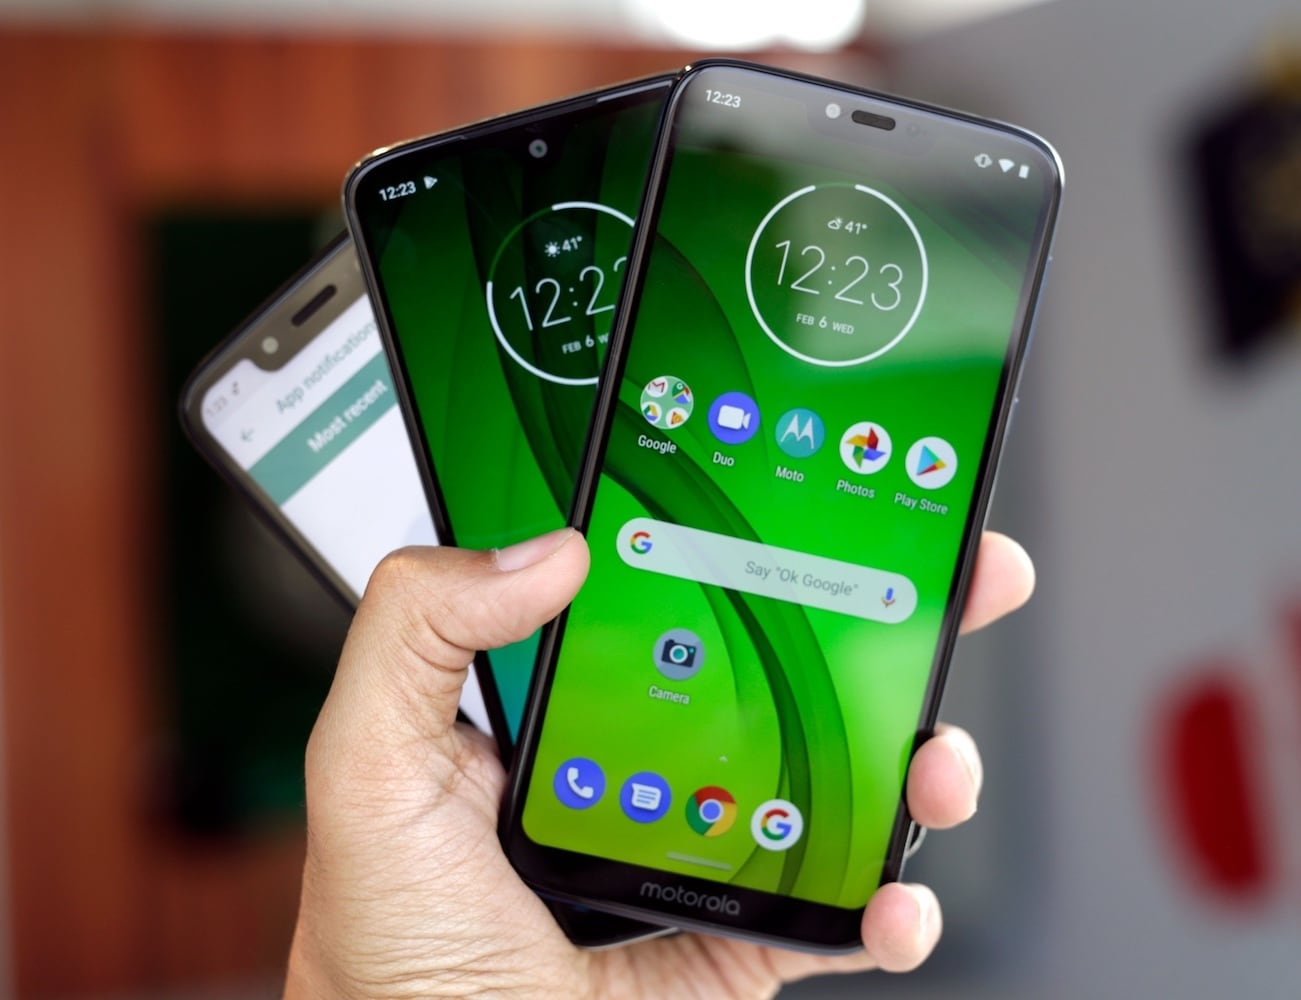 Motorola Moto G7 Smartphone Collection takes and displays beautiful images